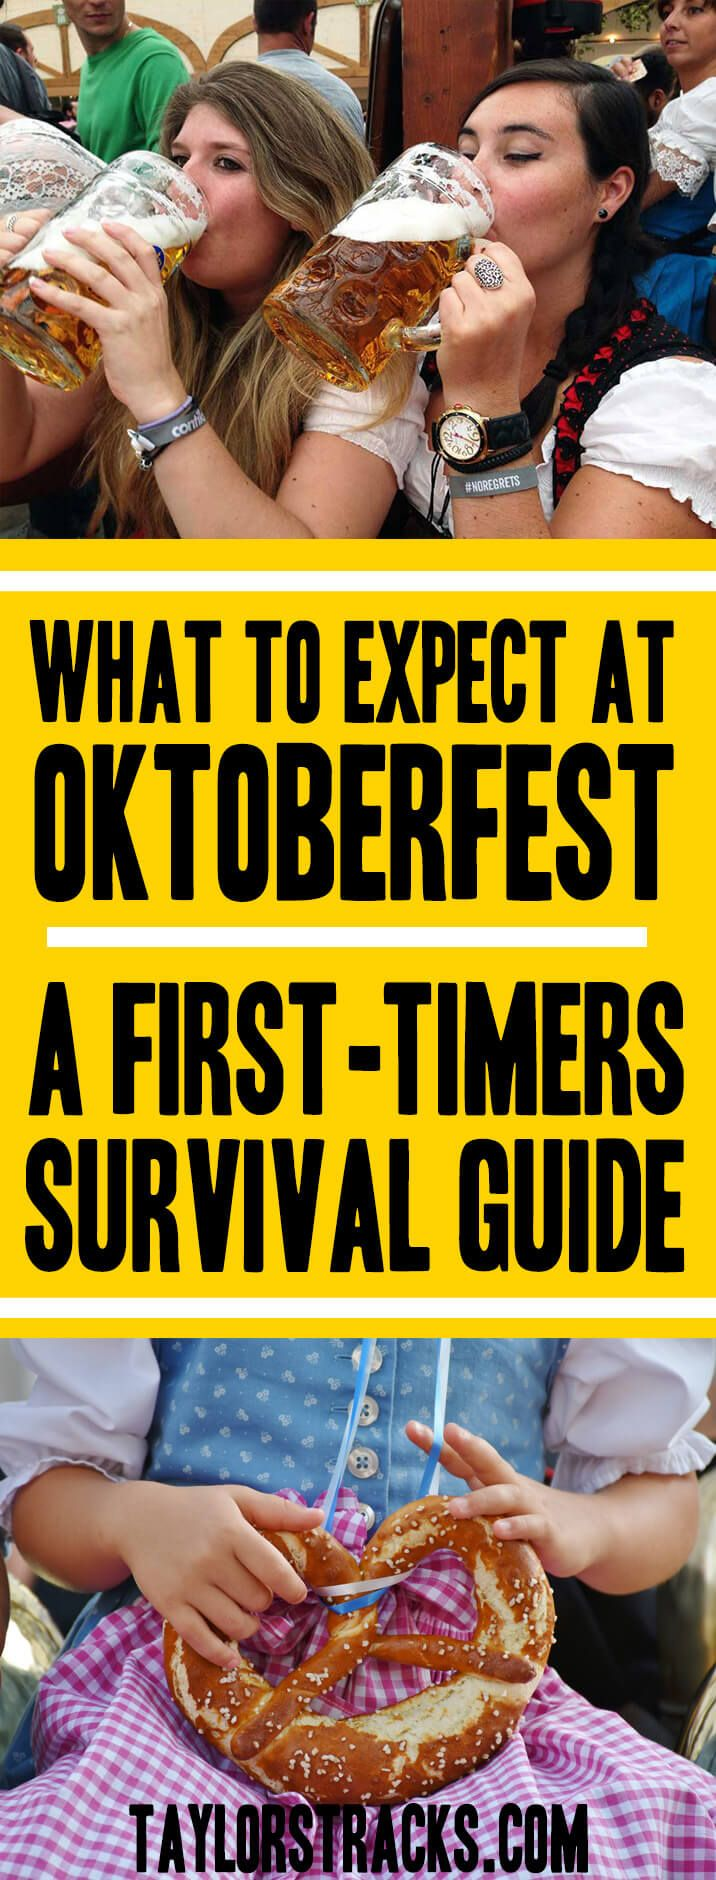 Everything you need to know for the original Oktoberfest from finding the perfect Oktoberfest outfit, how much it costs and how to choose an Oktoberfest tent! #oktoberfest #germany ***************************************Oktoberfest Germany | Oktoberfest Guide | Oktoberfest Munich | Germany Travel | German Festival